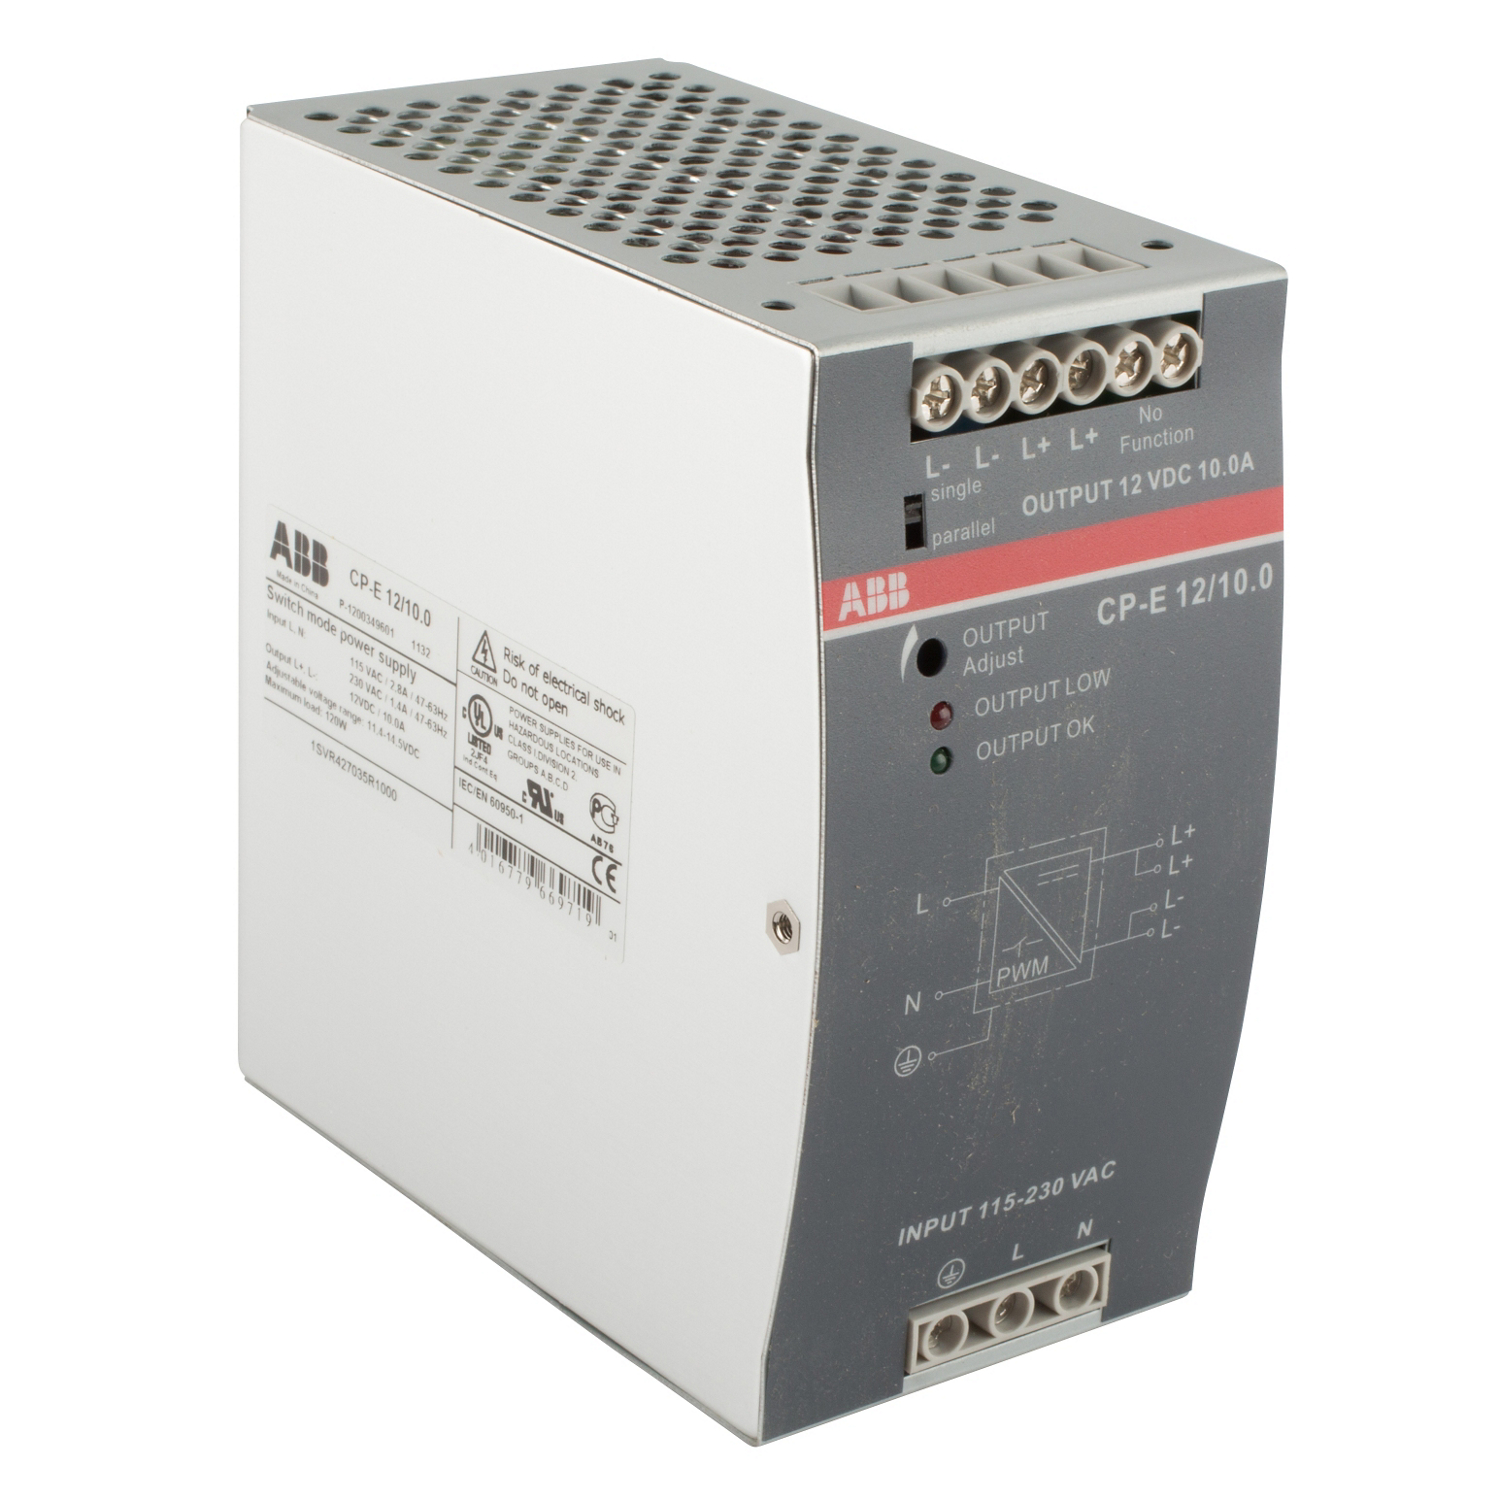 ABB 1SVR427035R1000 Power Supply Unit